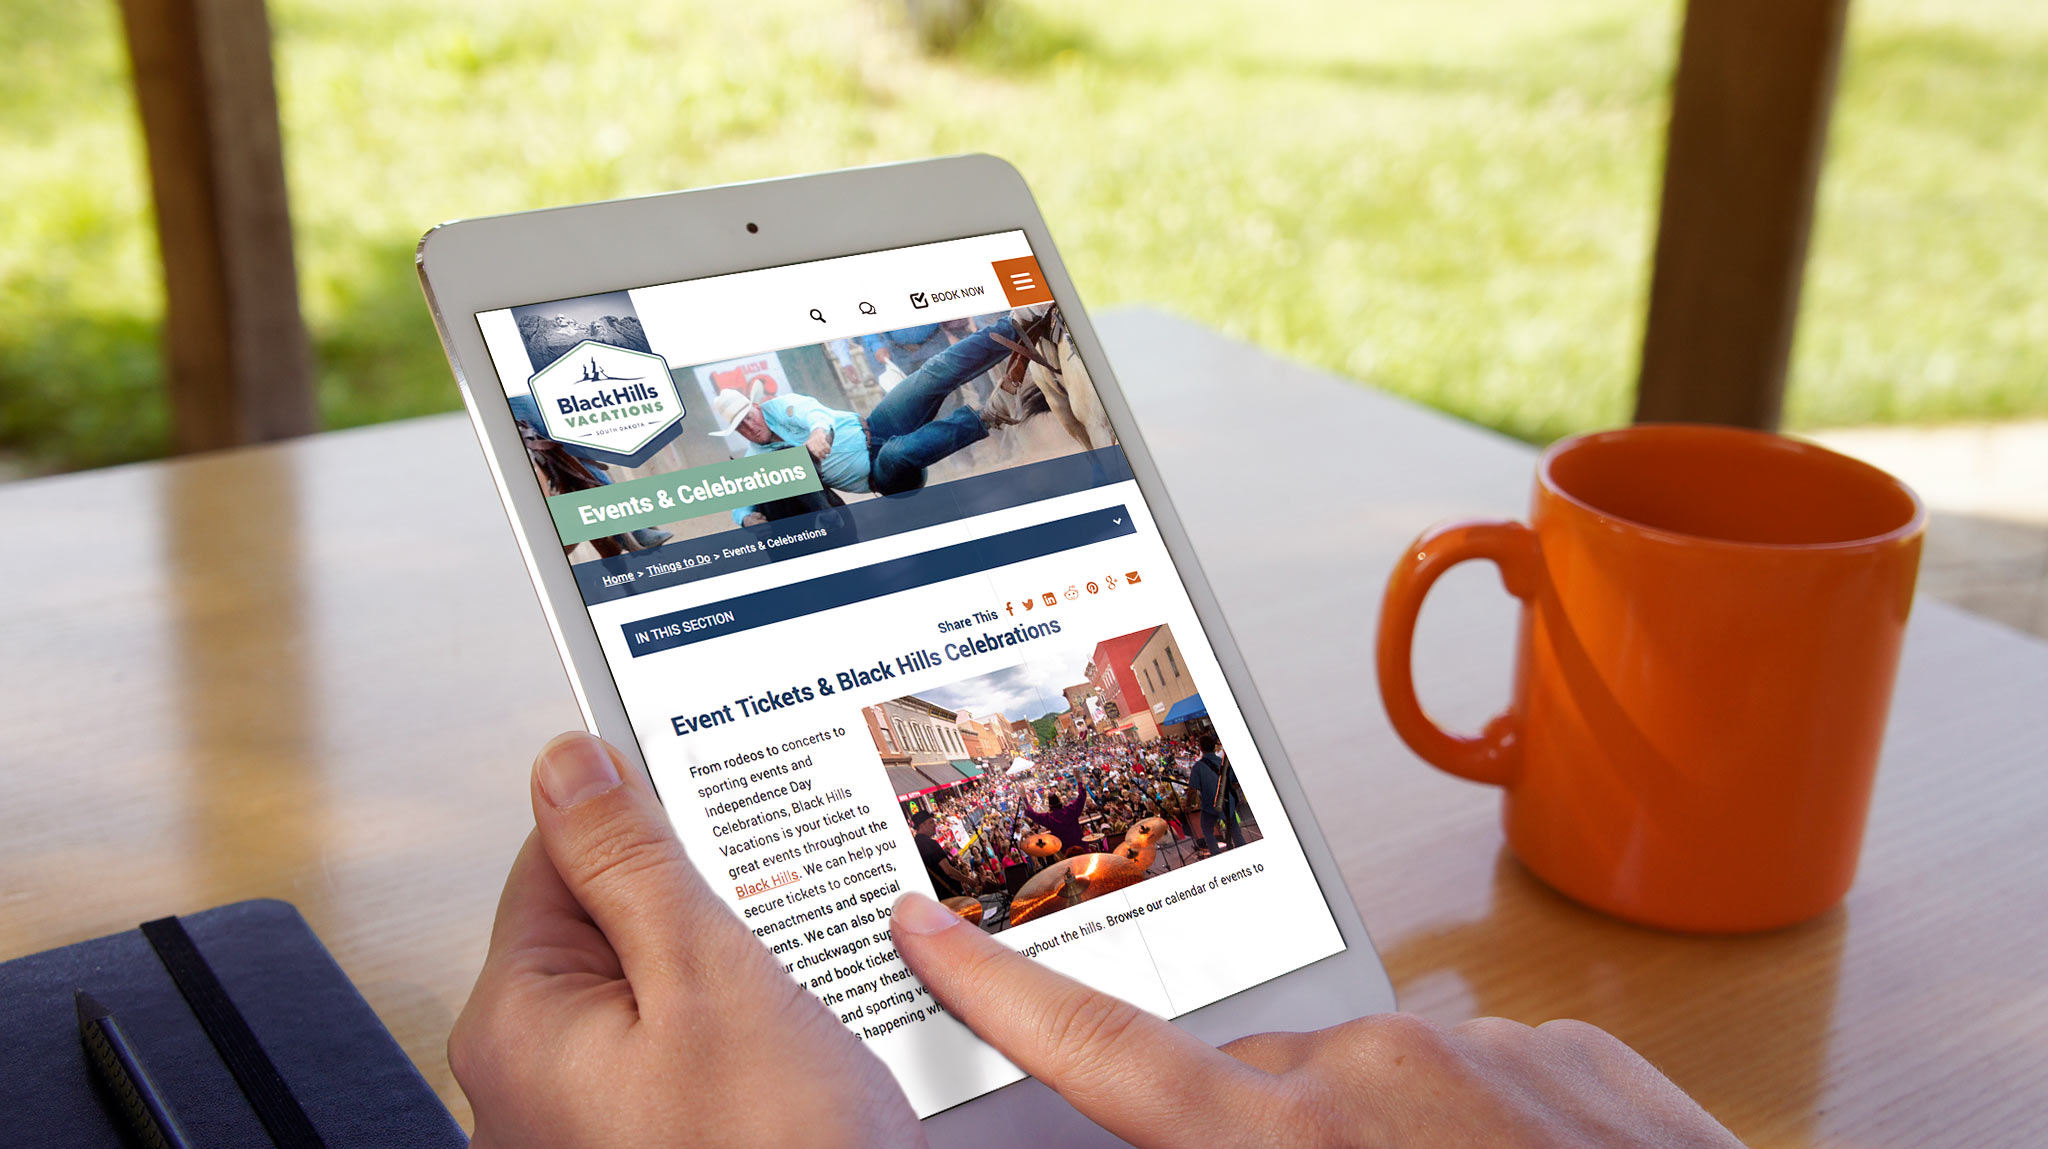 iPad Viewing Website | Black Hills Vacations